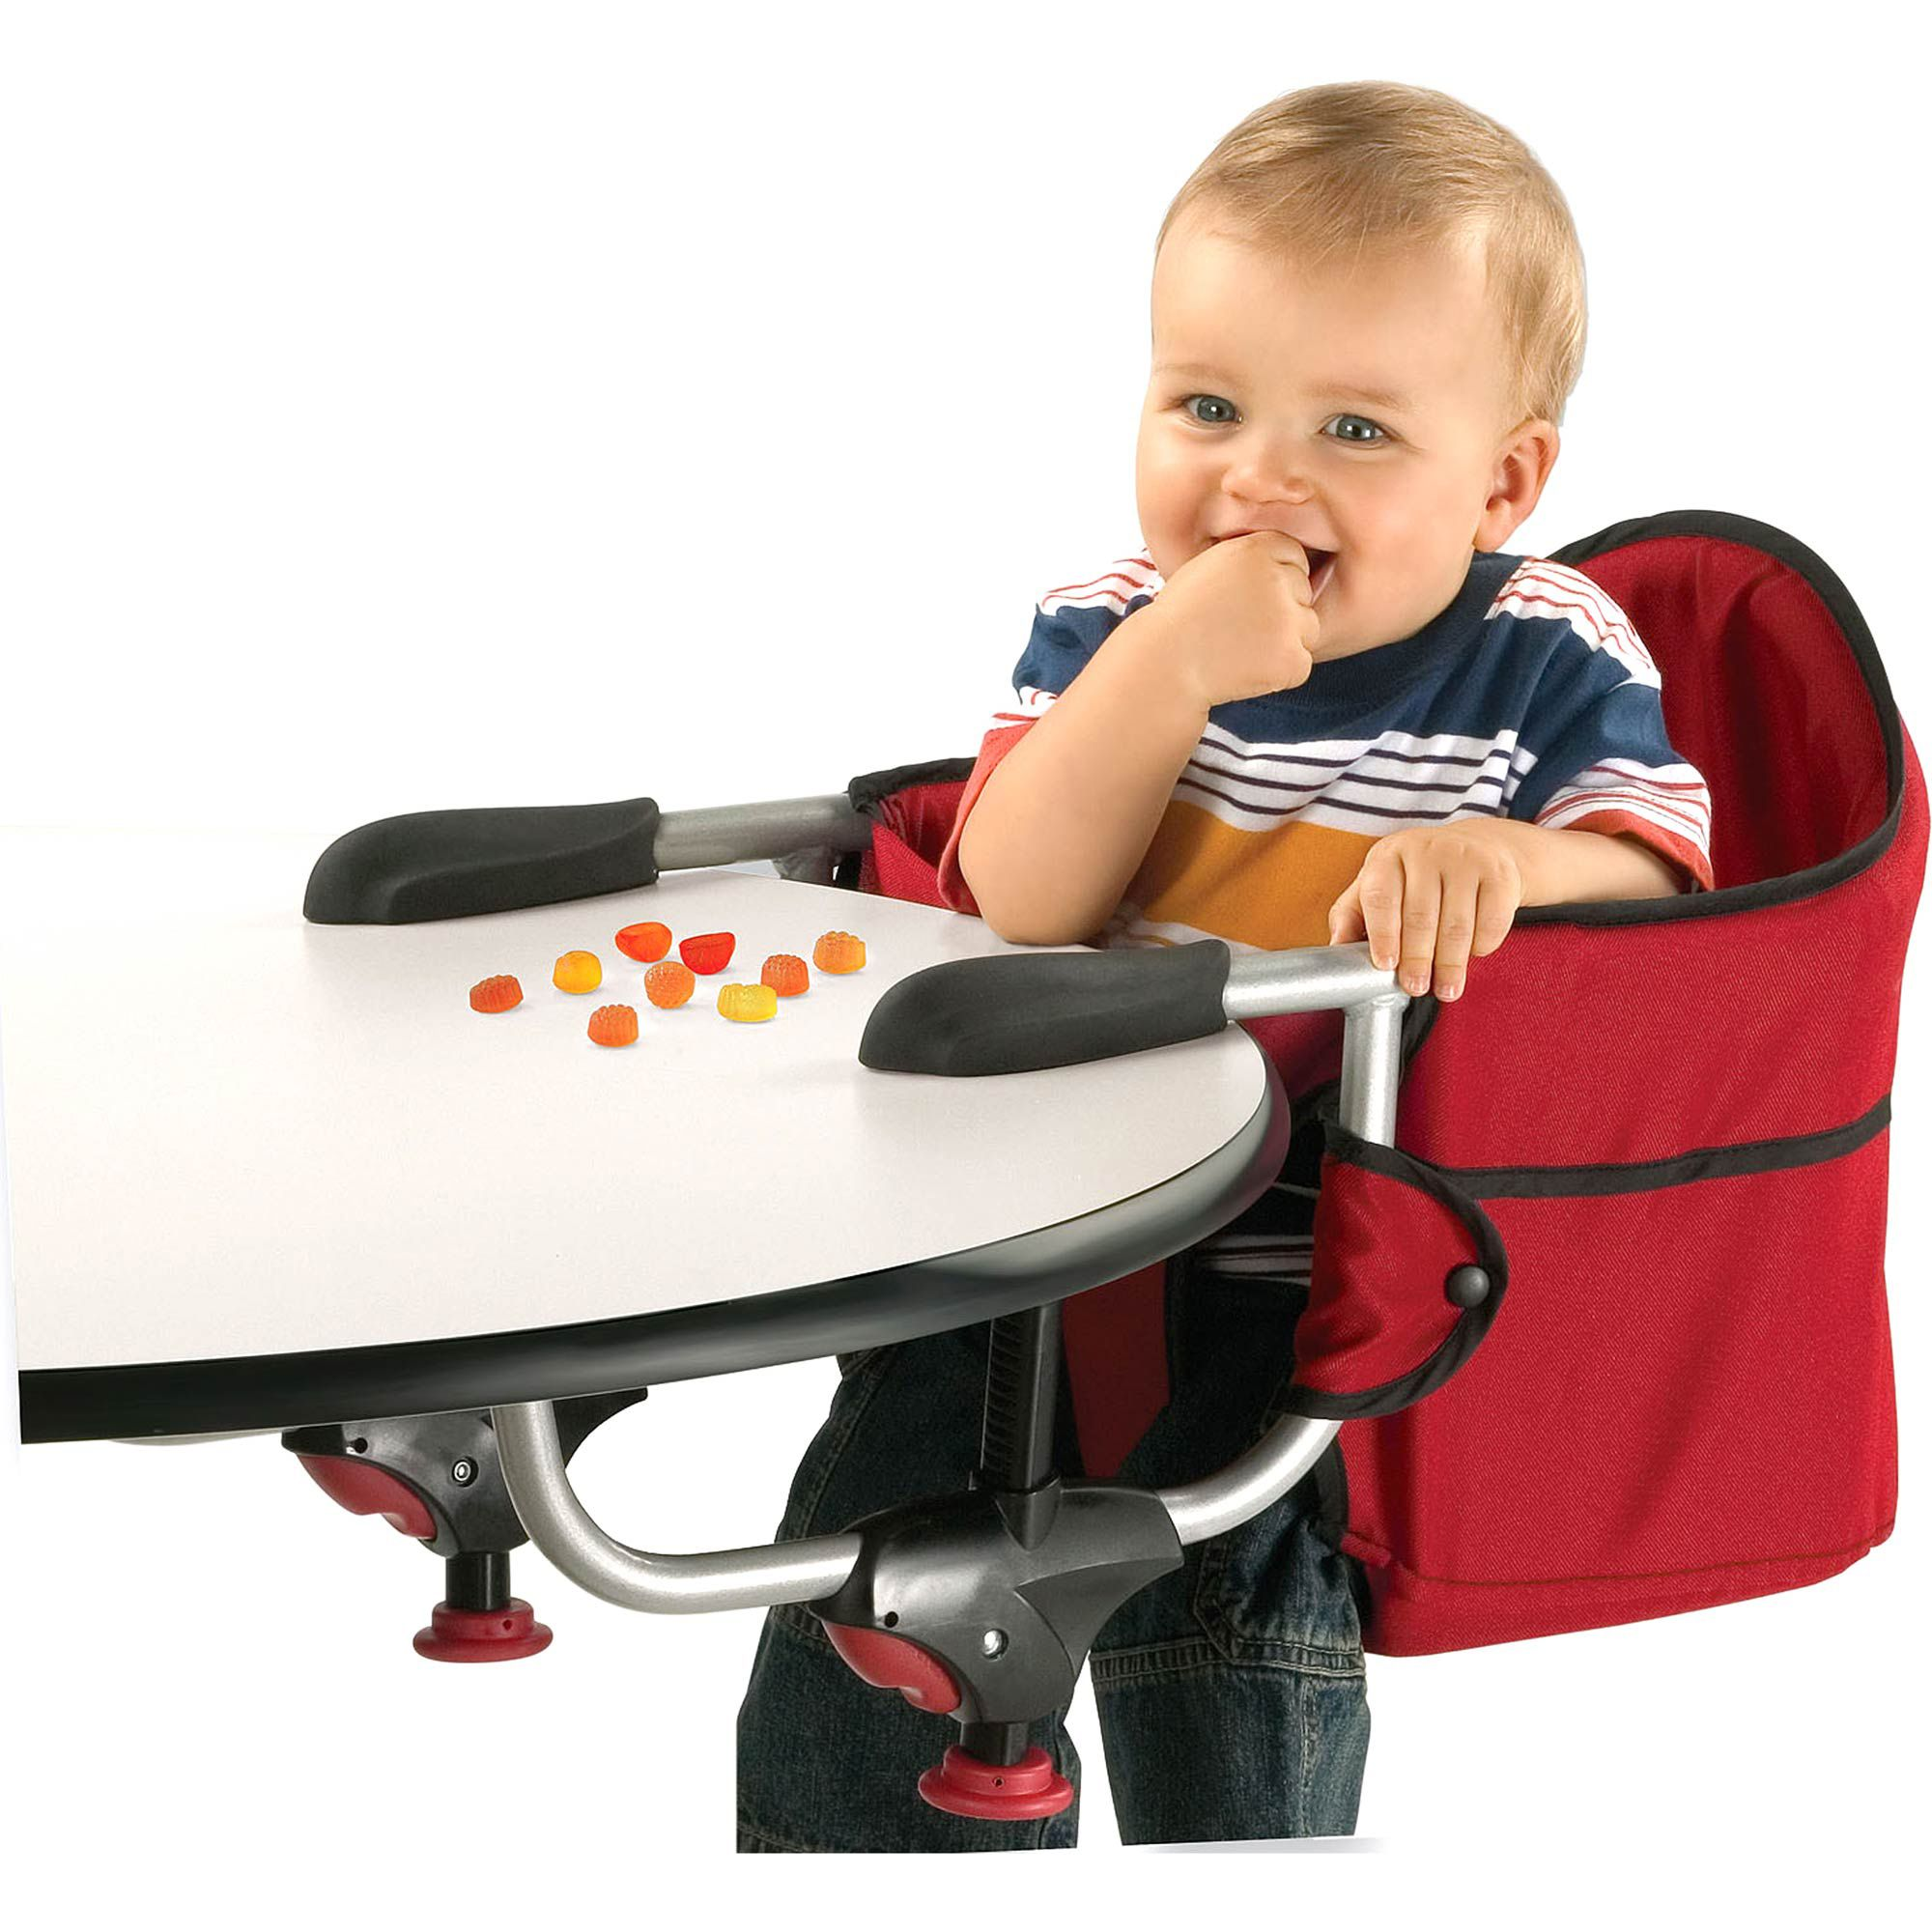 The Chicco Caddy Hook On Chair Is The Perfect Travel Highchair To